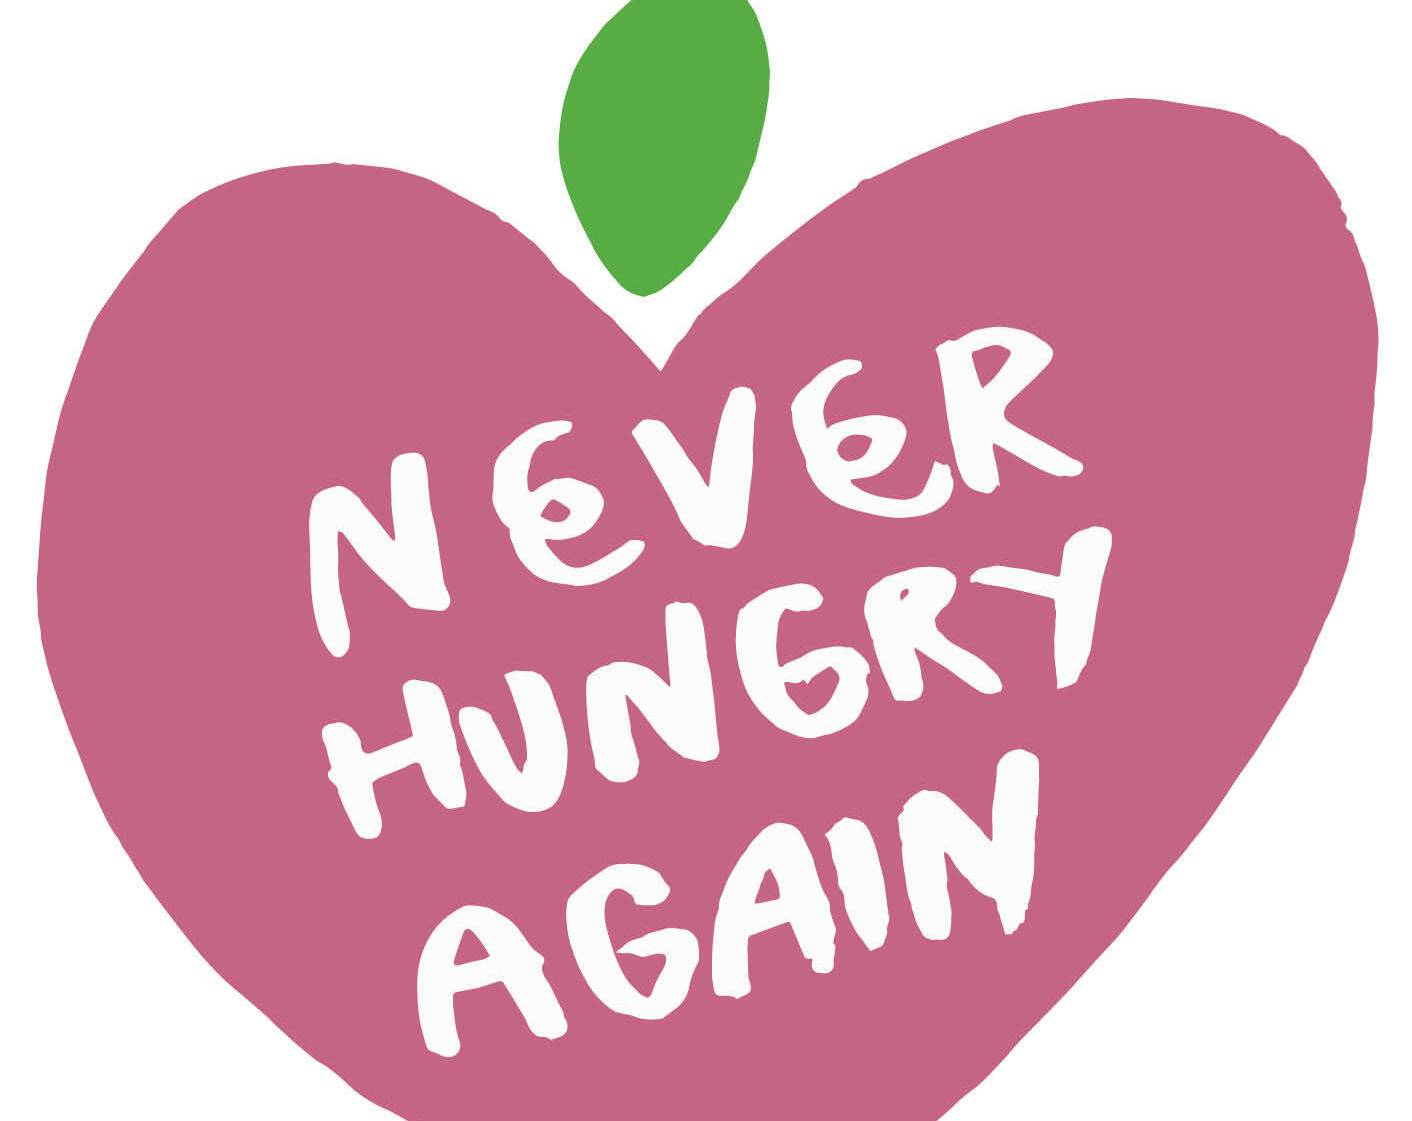 Never Hungry Again campaign logo